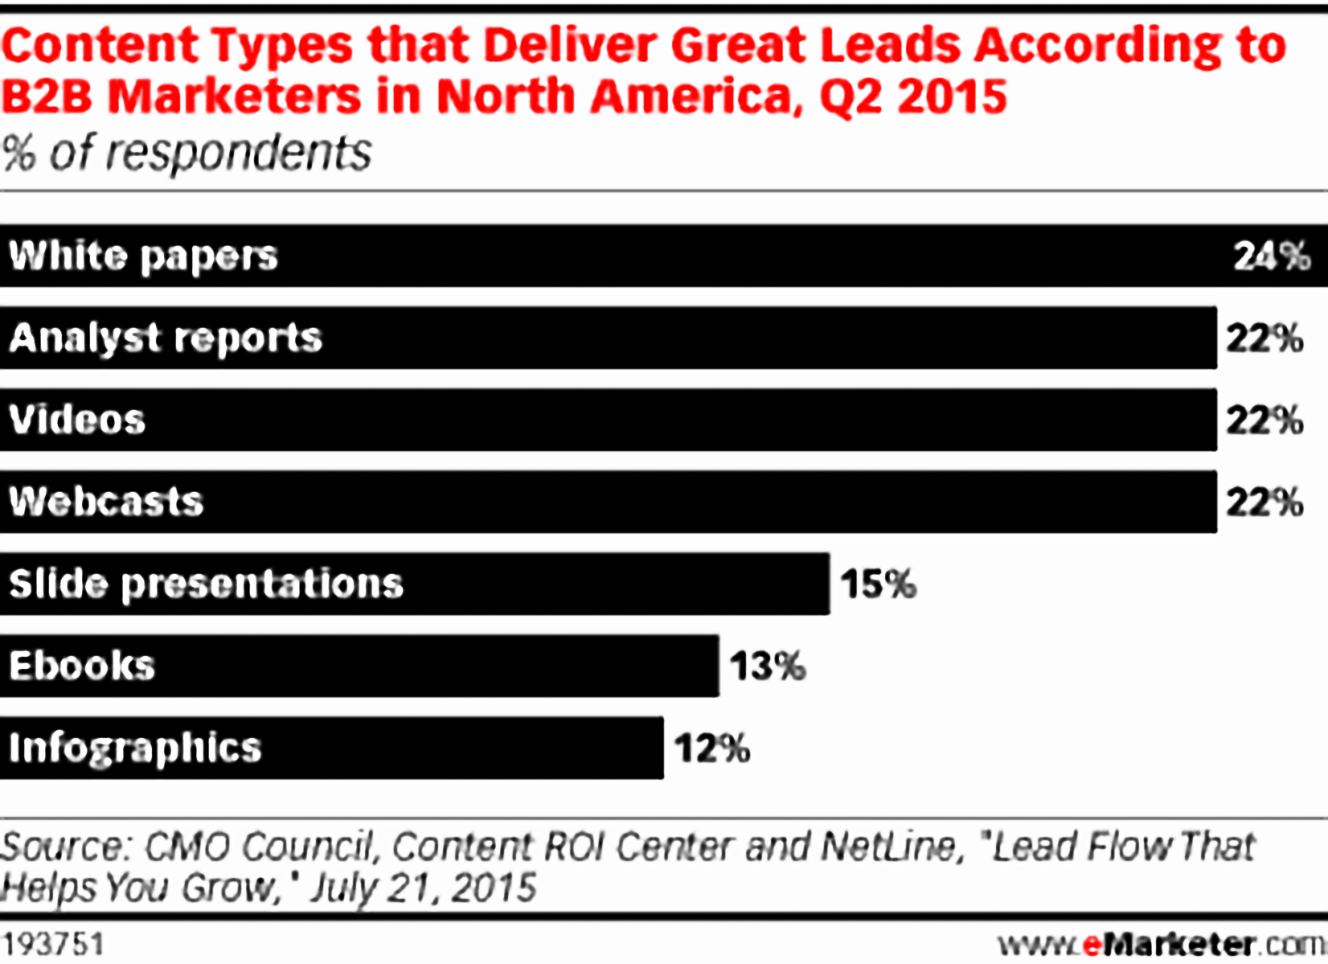 Content Types that Deliver Great Leads According to B2B Marketers in North America